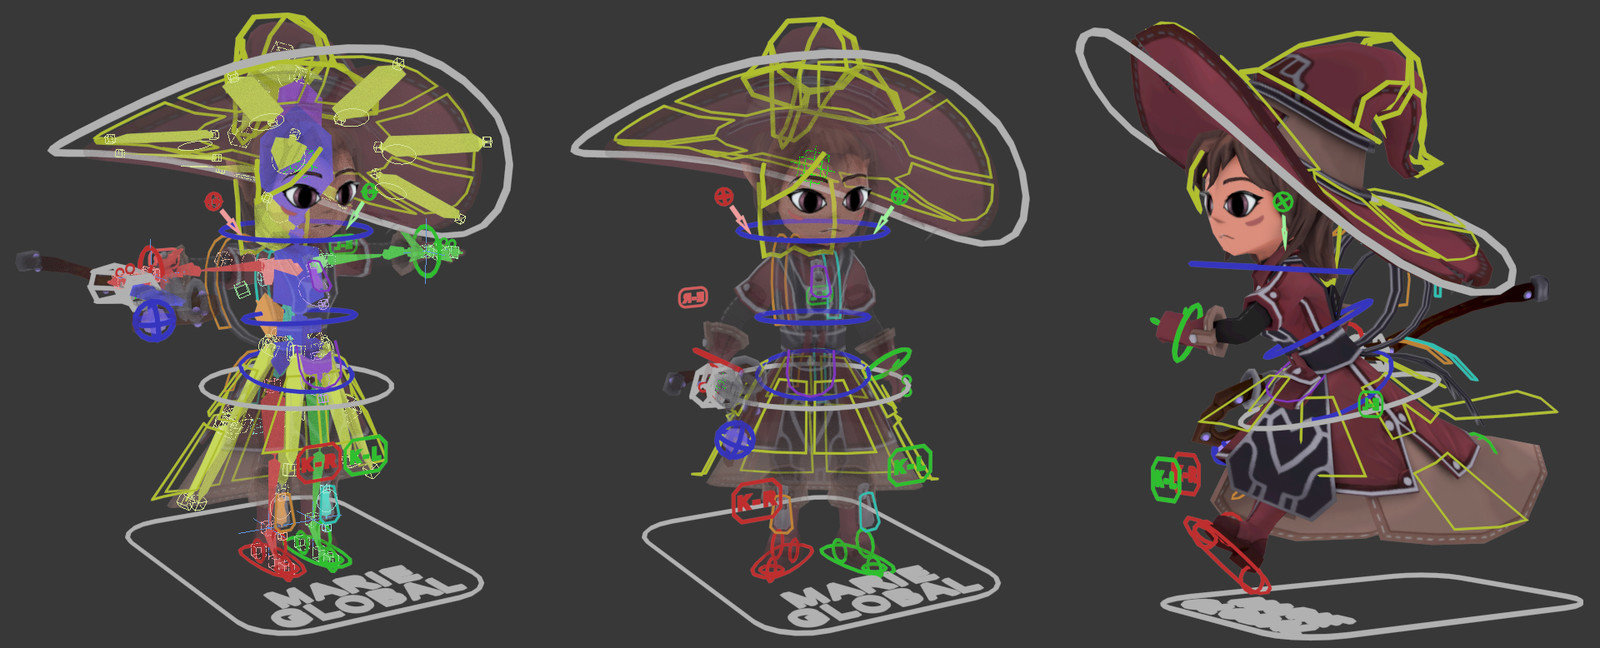 Some simple screen captures of the rig.